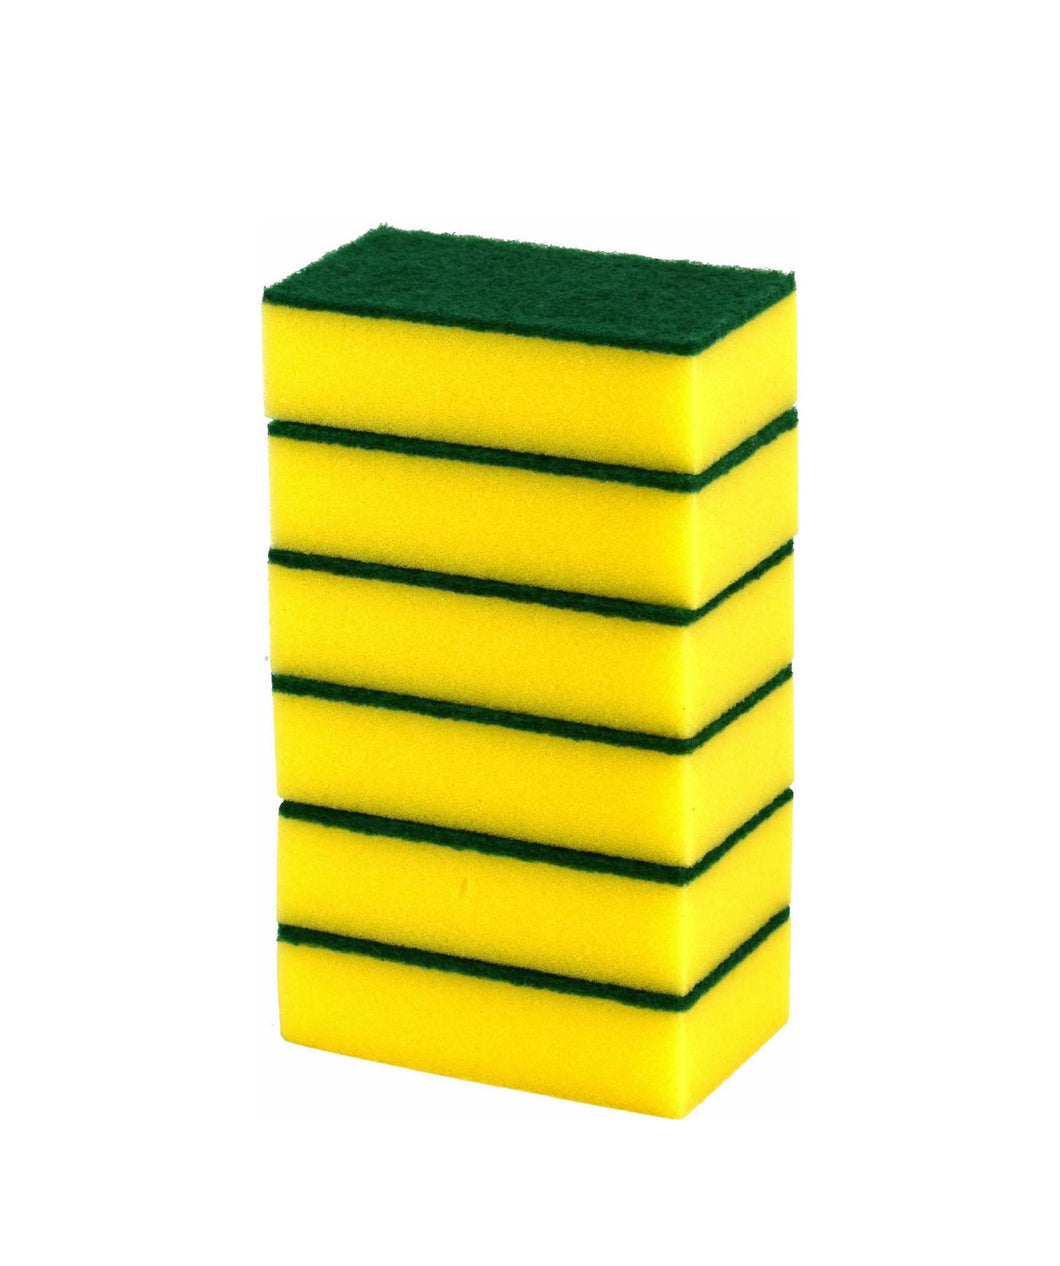 6 Pack Accord Industrial Large Sponge Indoor Outdoor Car Cleaning Yellow Sponge 15 x 4cm